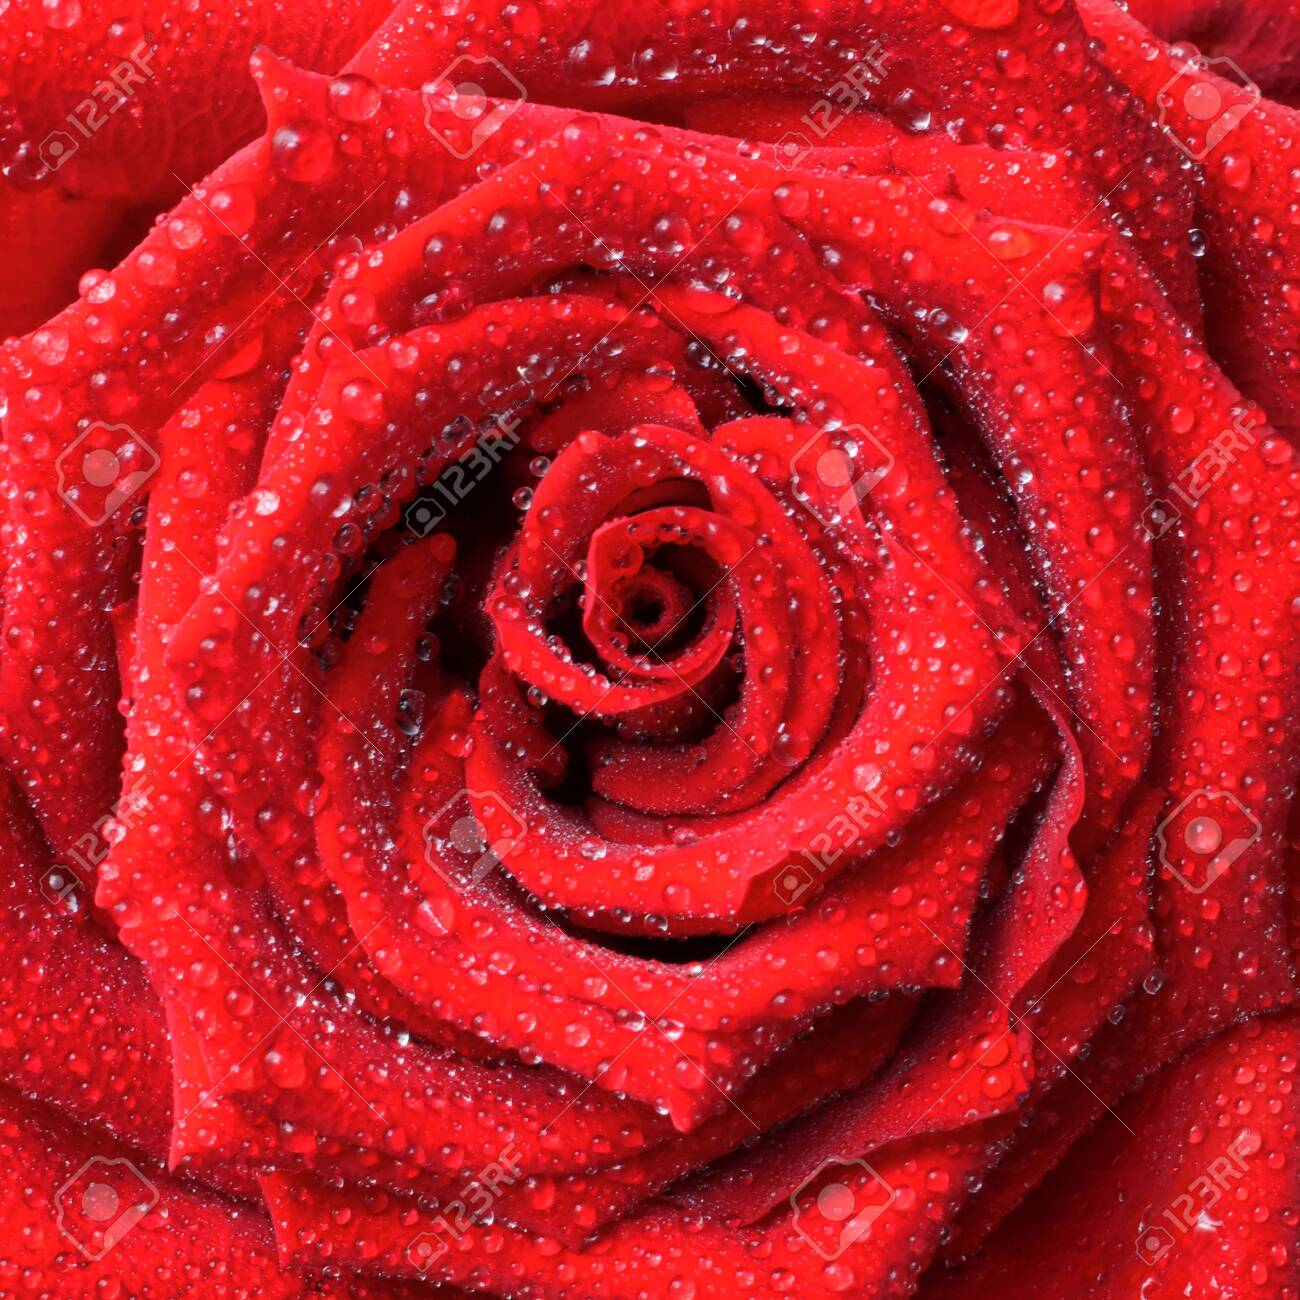 lush red rose with dew drops background - 135487227